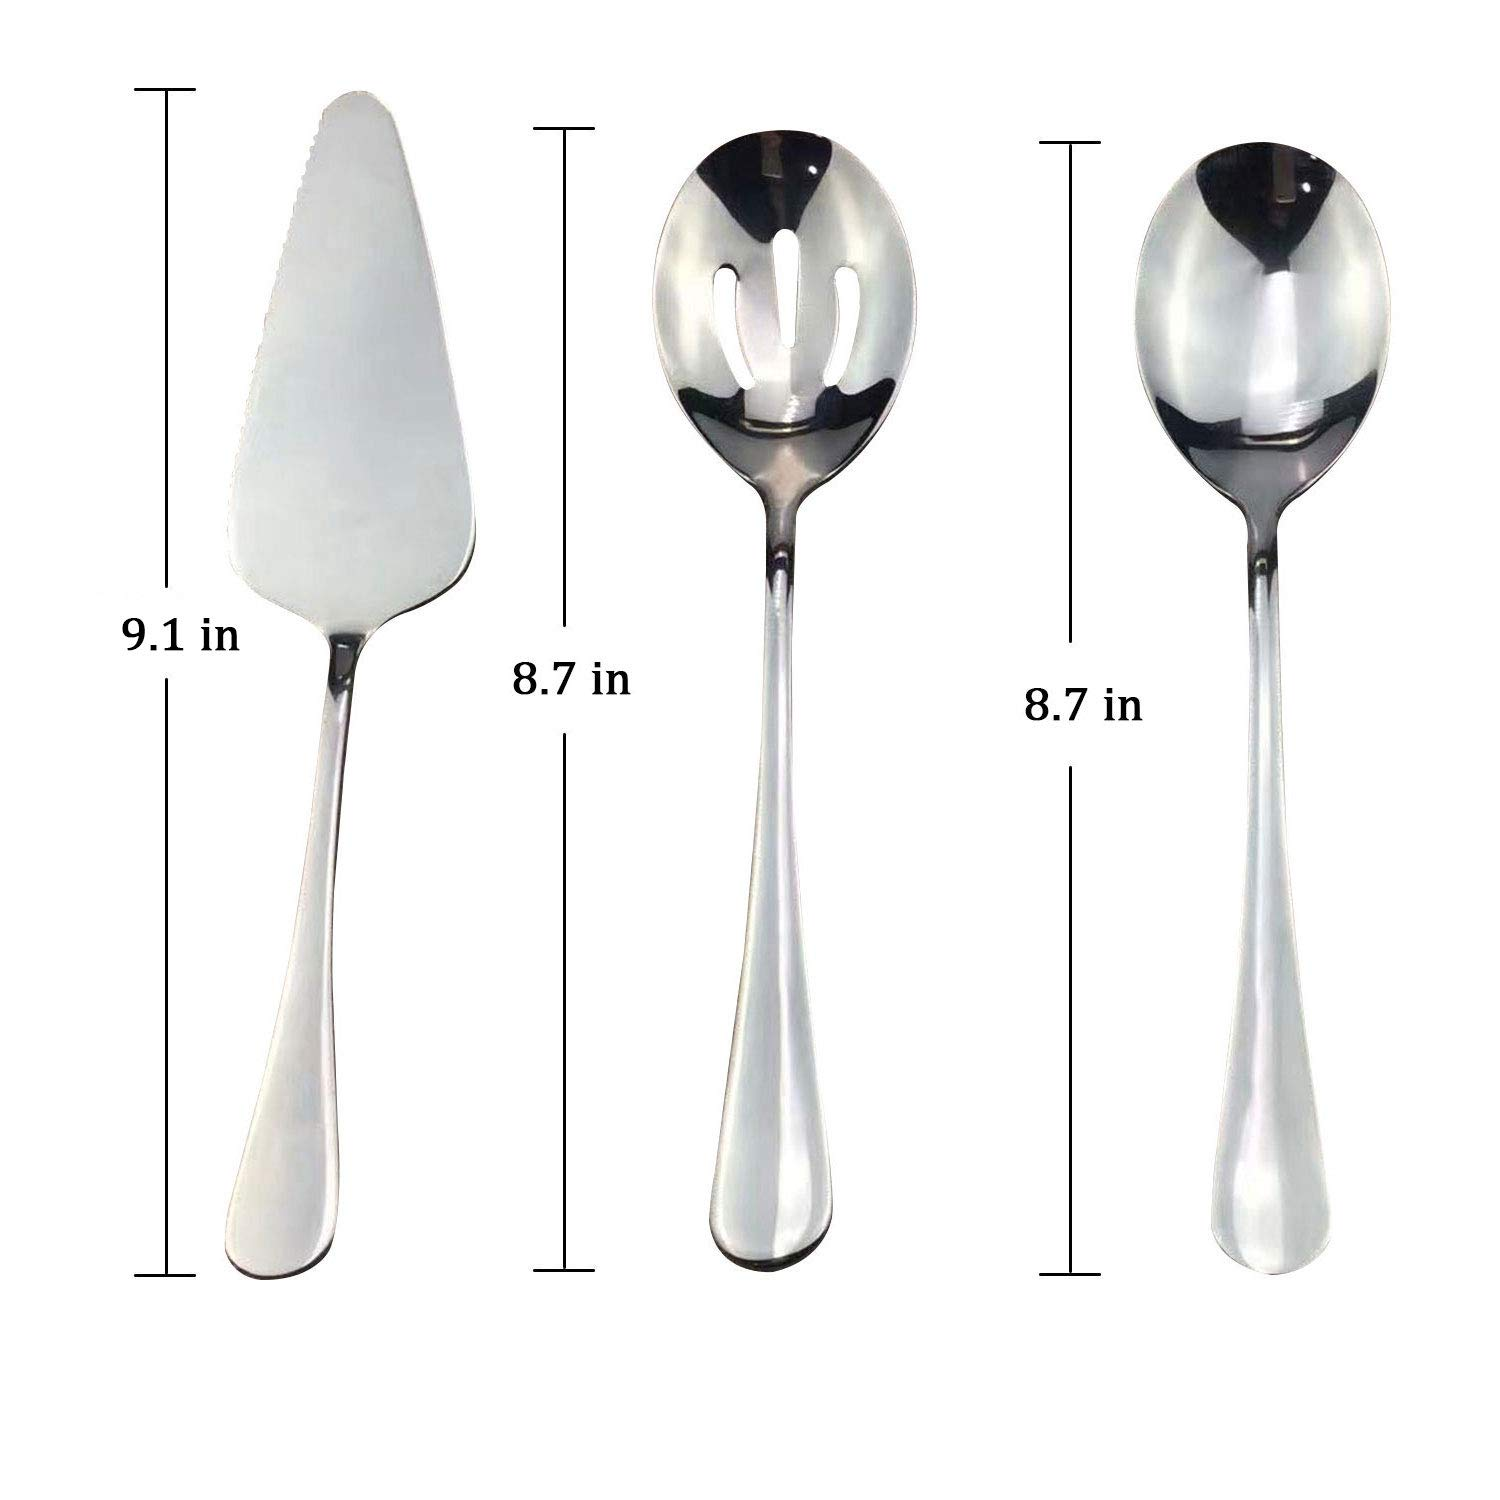 TaNaT Serving Set 5-Piece Stainless Steel Cutlery Flatware Mini Dessert Server for Home Kitchen,Restaurant and Cafes(Set of 5),Classic Style,Never Rust,with Round Edge